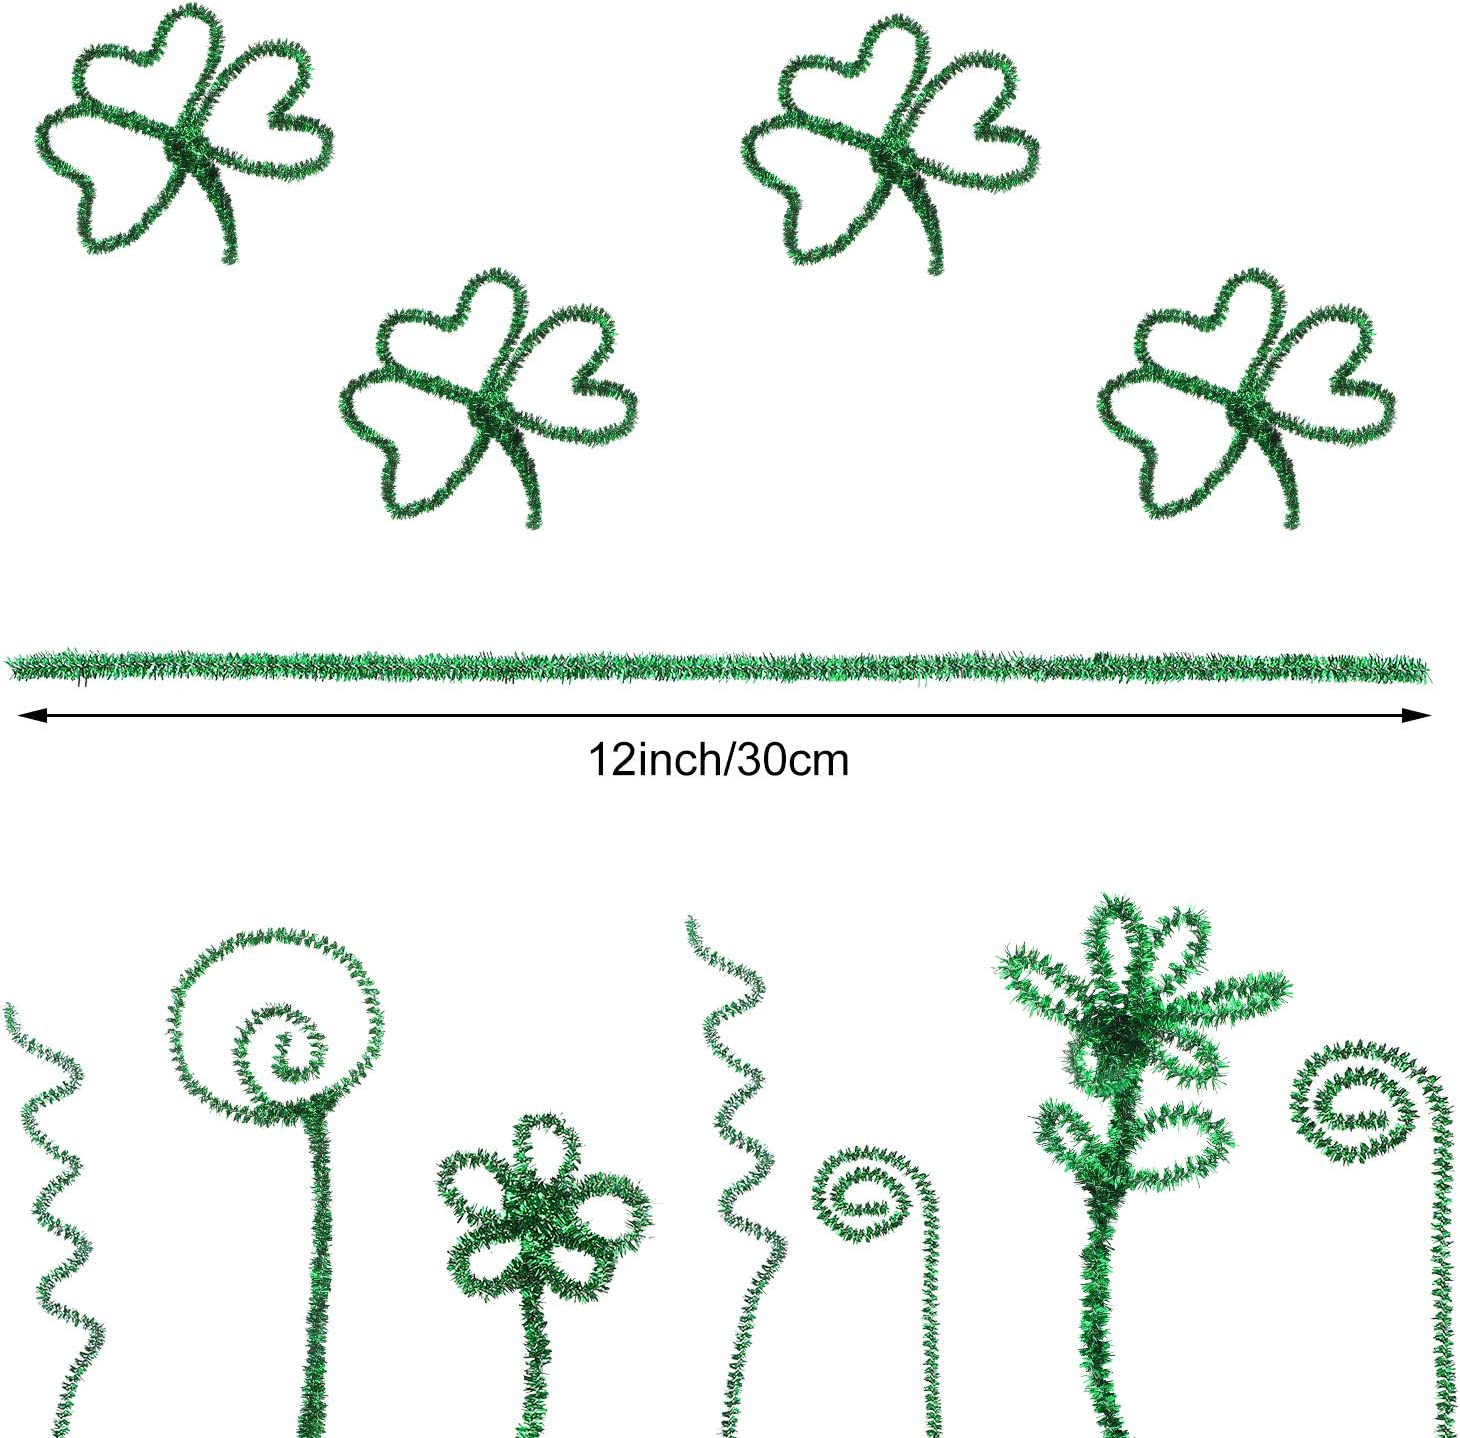 Green Patricks Day Wedding Decoration 400 Pieces St 12 Inches Patricks Day Pipe Cleaners Craft Chenille Stems Glitter Chenille Stems Creative Arts for St